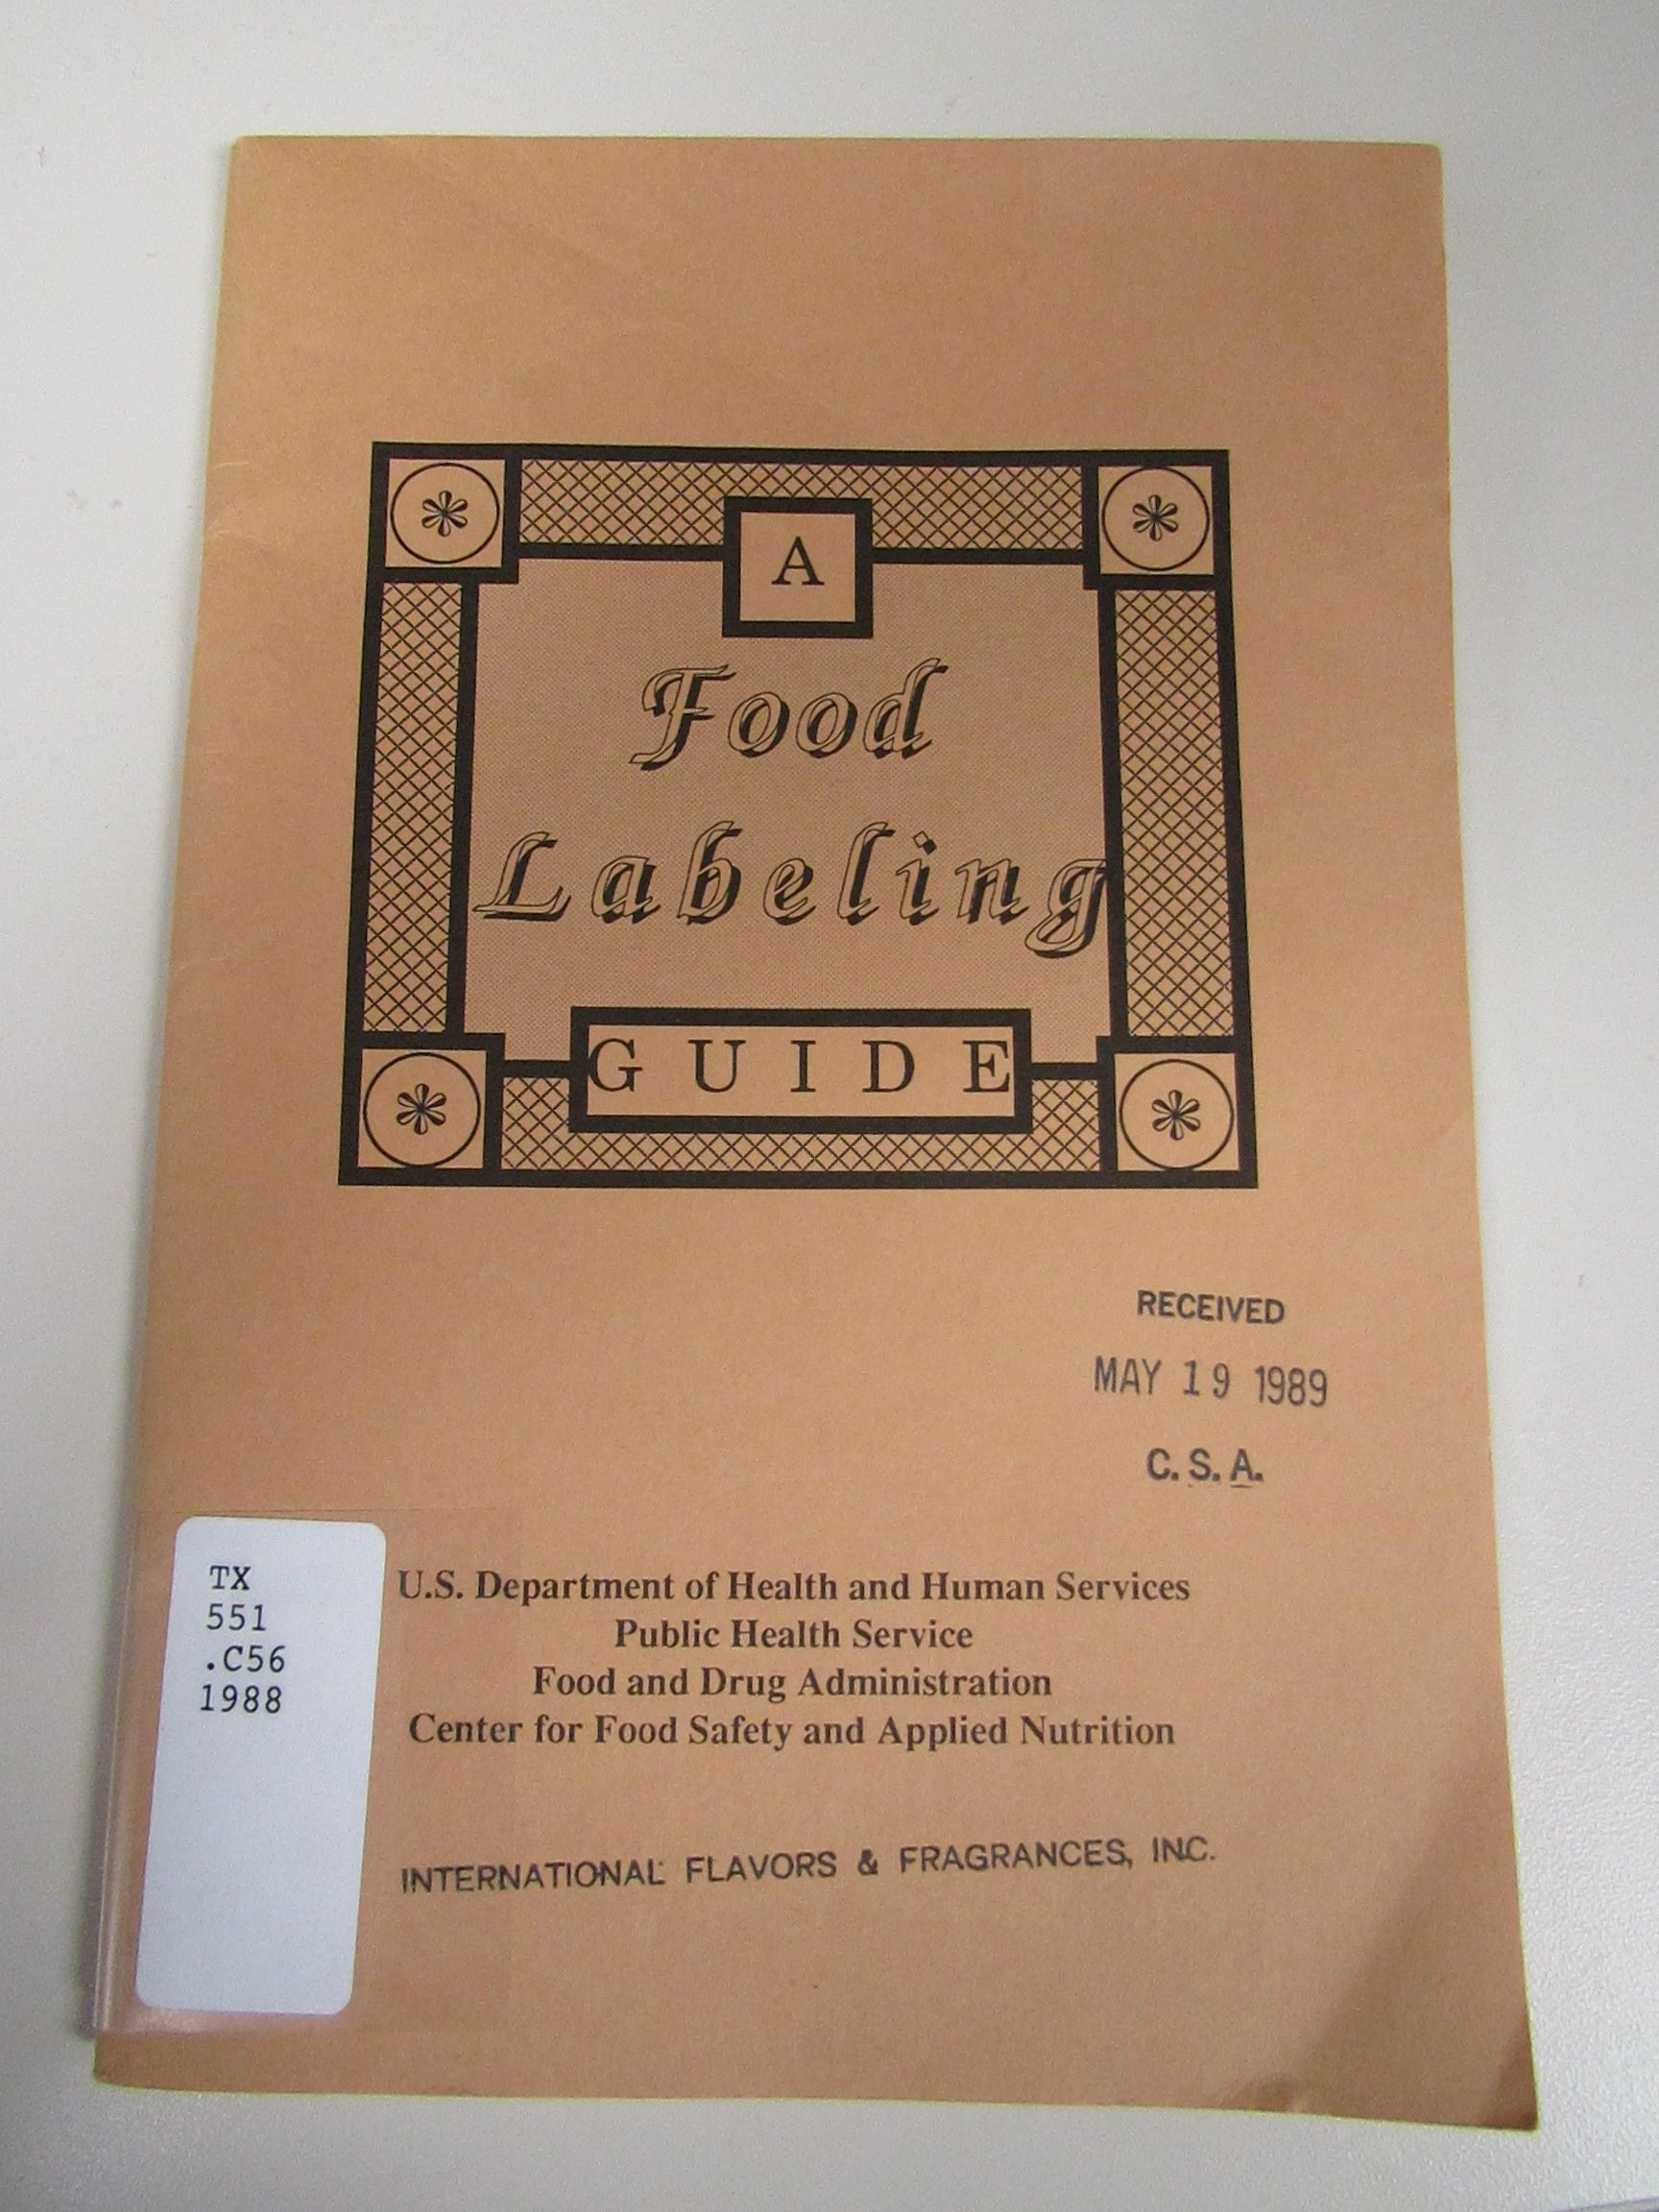 A Food Labeling Guide (1988) by the U.S. Department of